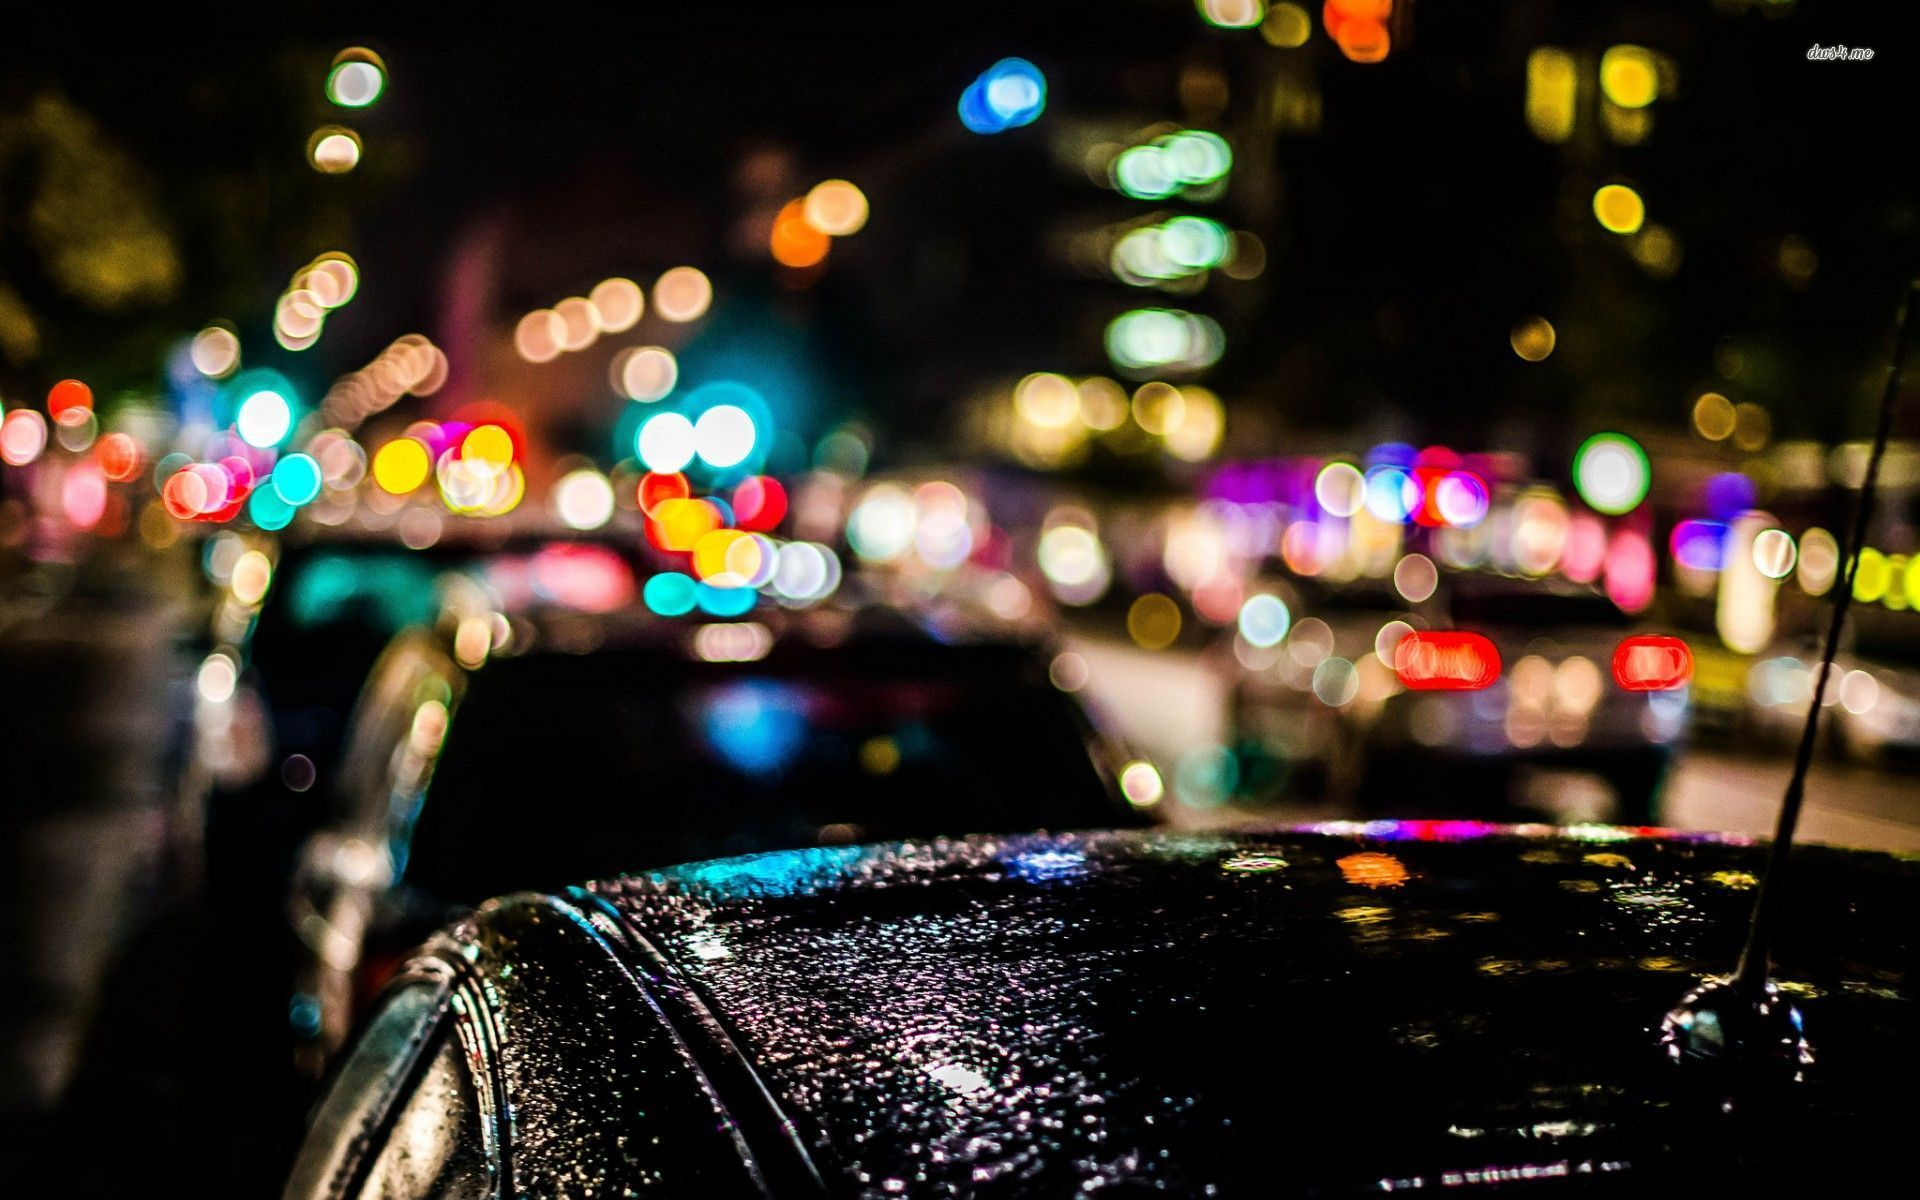 ... Blurred city lights over the cars wallpaper 1920x1200 ...